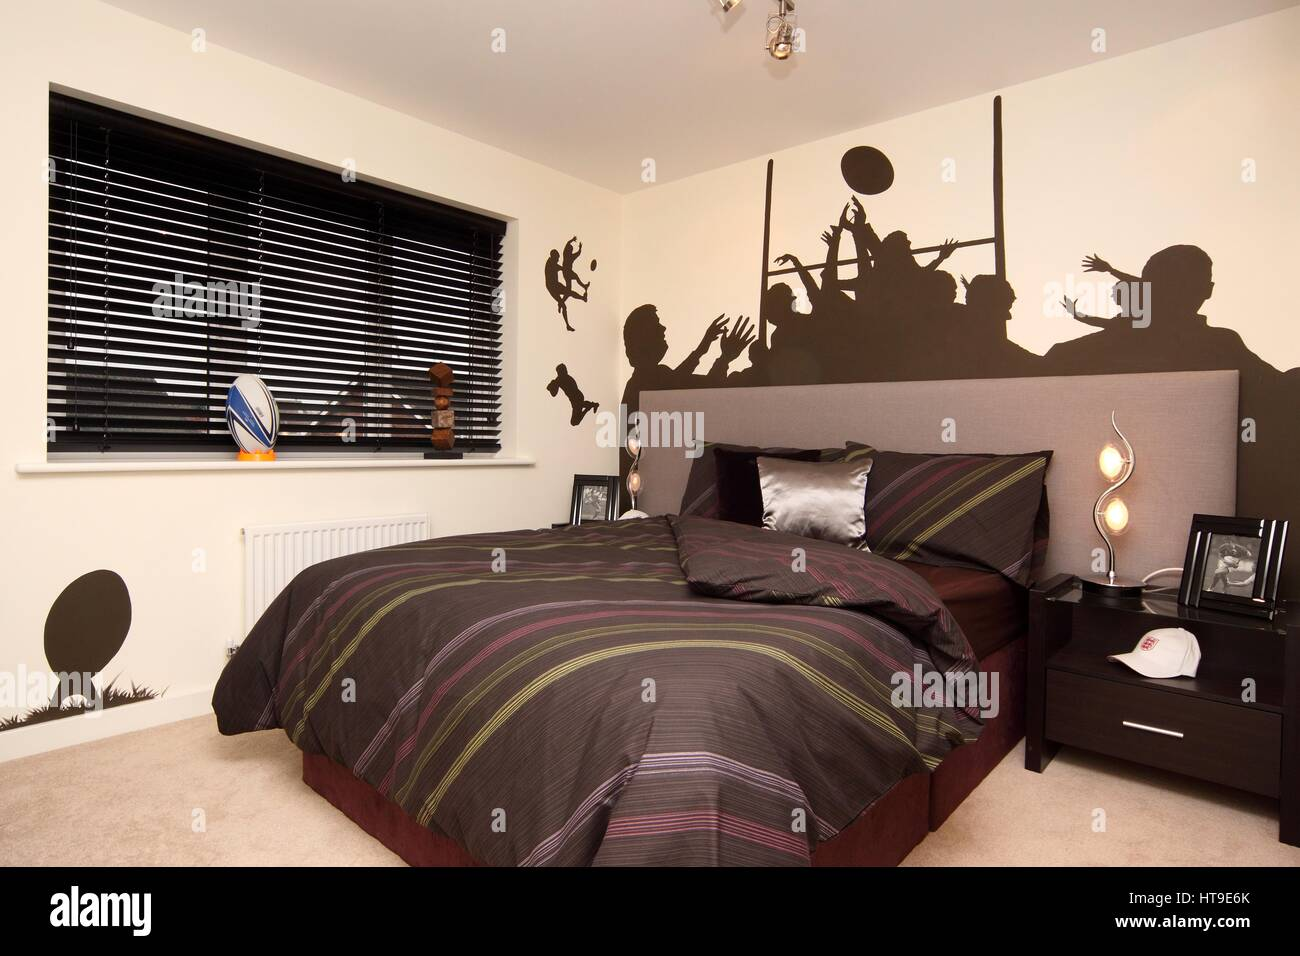 Home Interior. Boys Bedroom, Rugby Theme, Rugby Mural, Feature Wall,